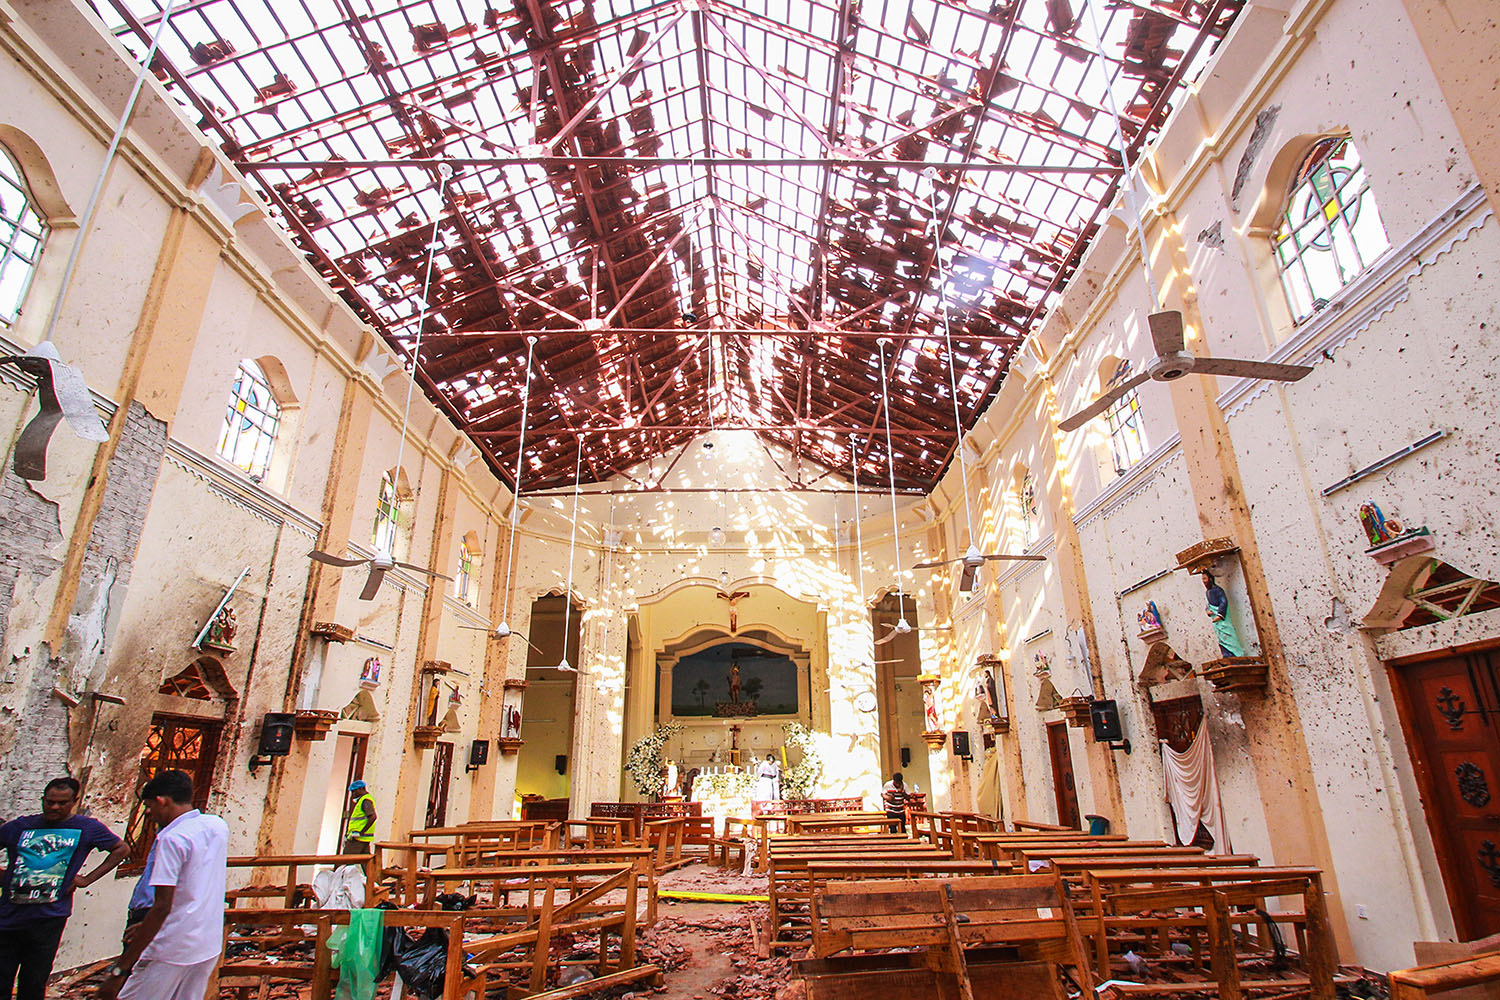 Sri Lankan officials inspect St. Sebastian's Church in Negombo, north of Colombo, after multiple explosions targeted churches and hotels across Sri Lanka on April 21. Stringer/Getty Images